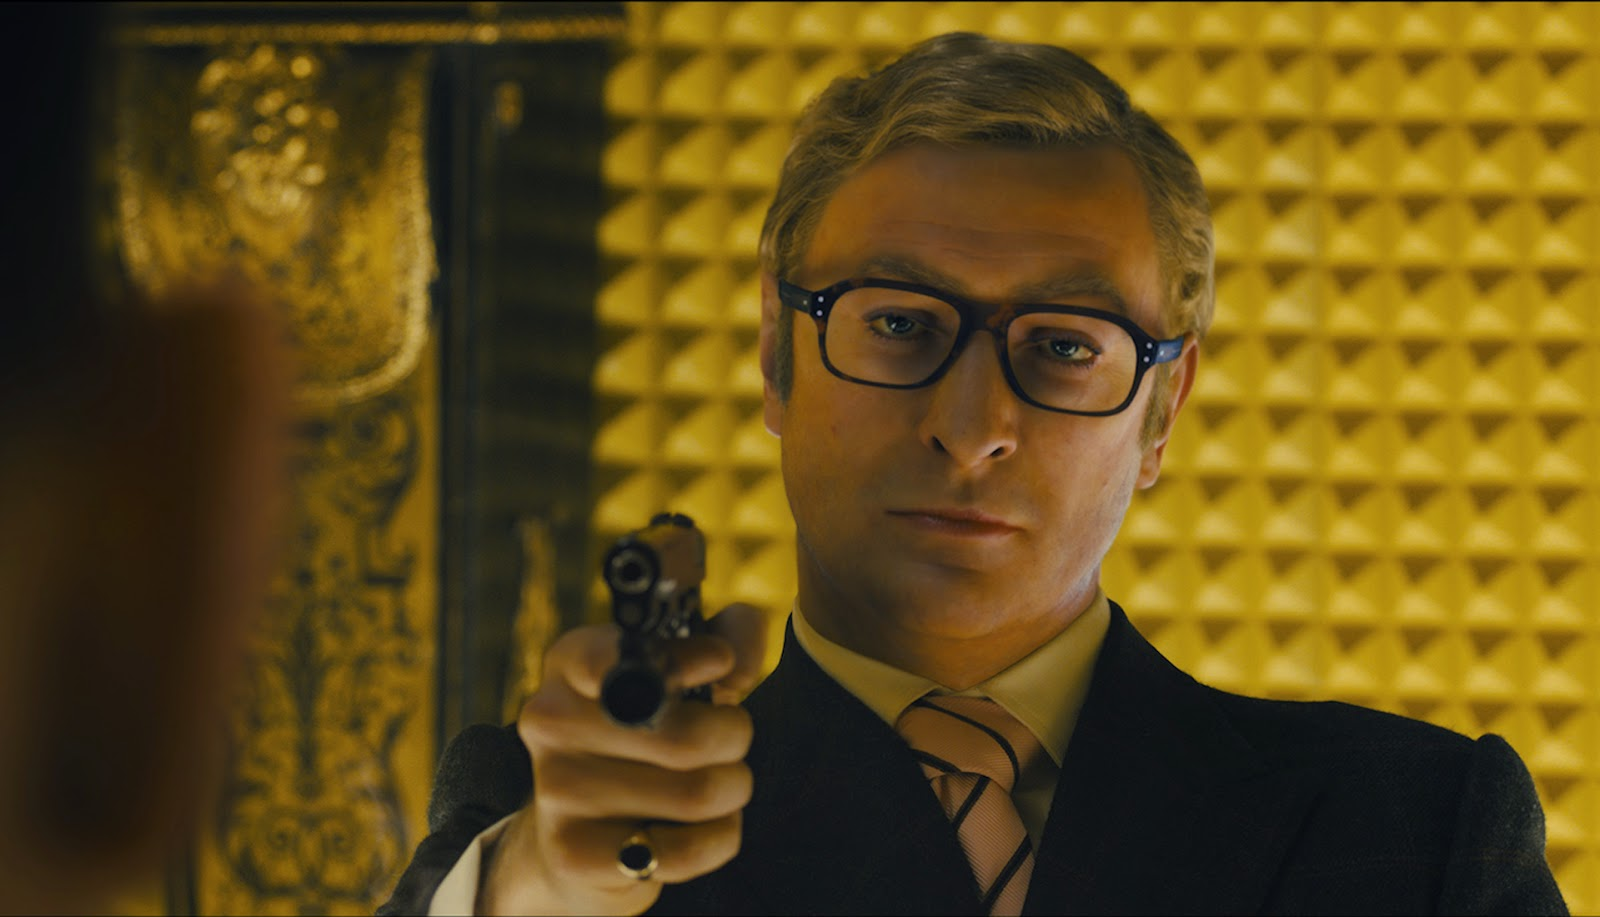 photos-of-young-michael-caine-in-kingsman-deleted-scene